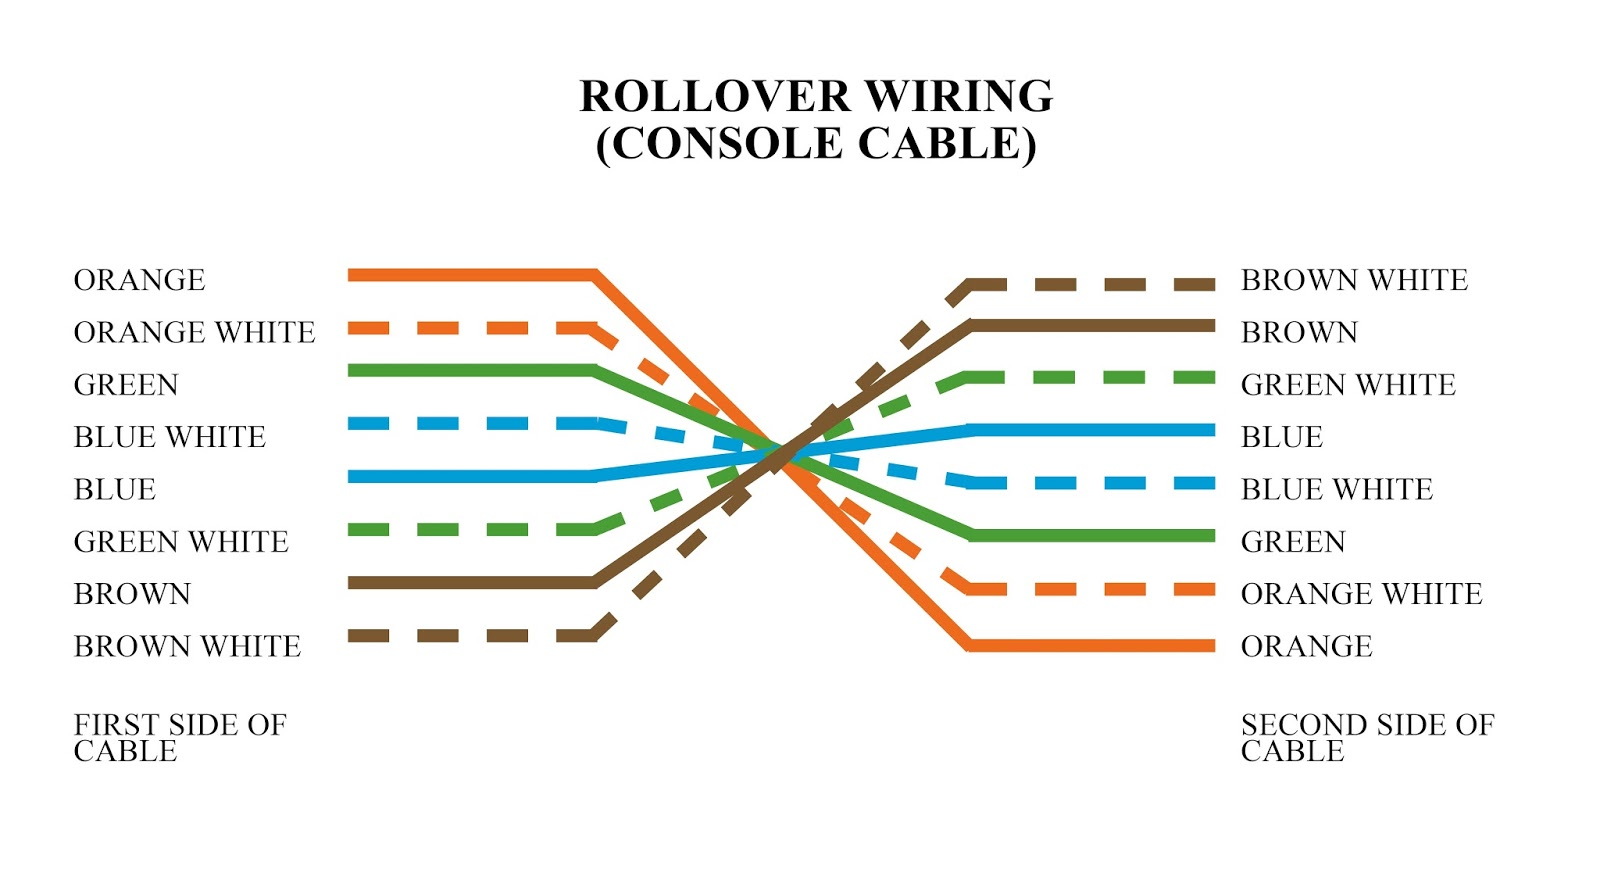 Rj45 Rollover Through Wiring Diagram Cable Twisted Pair Library 22 Images Color Code Network